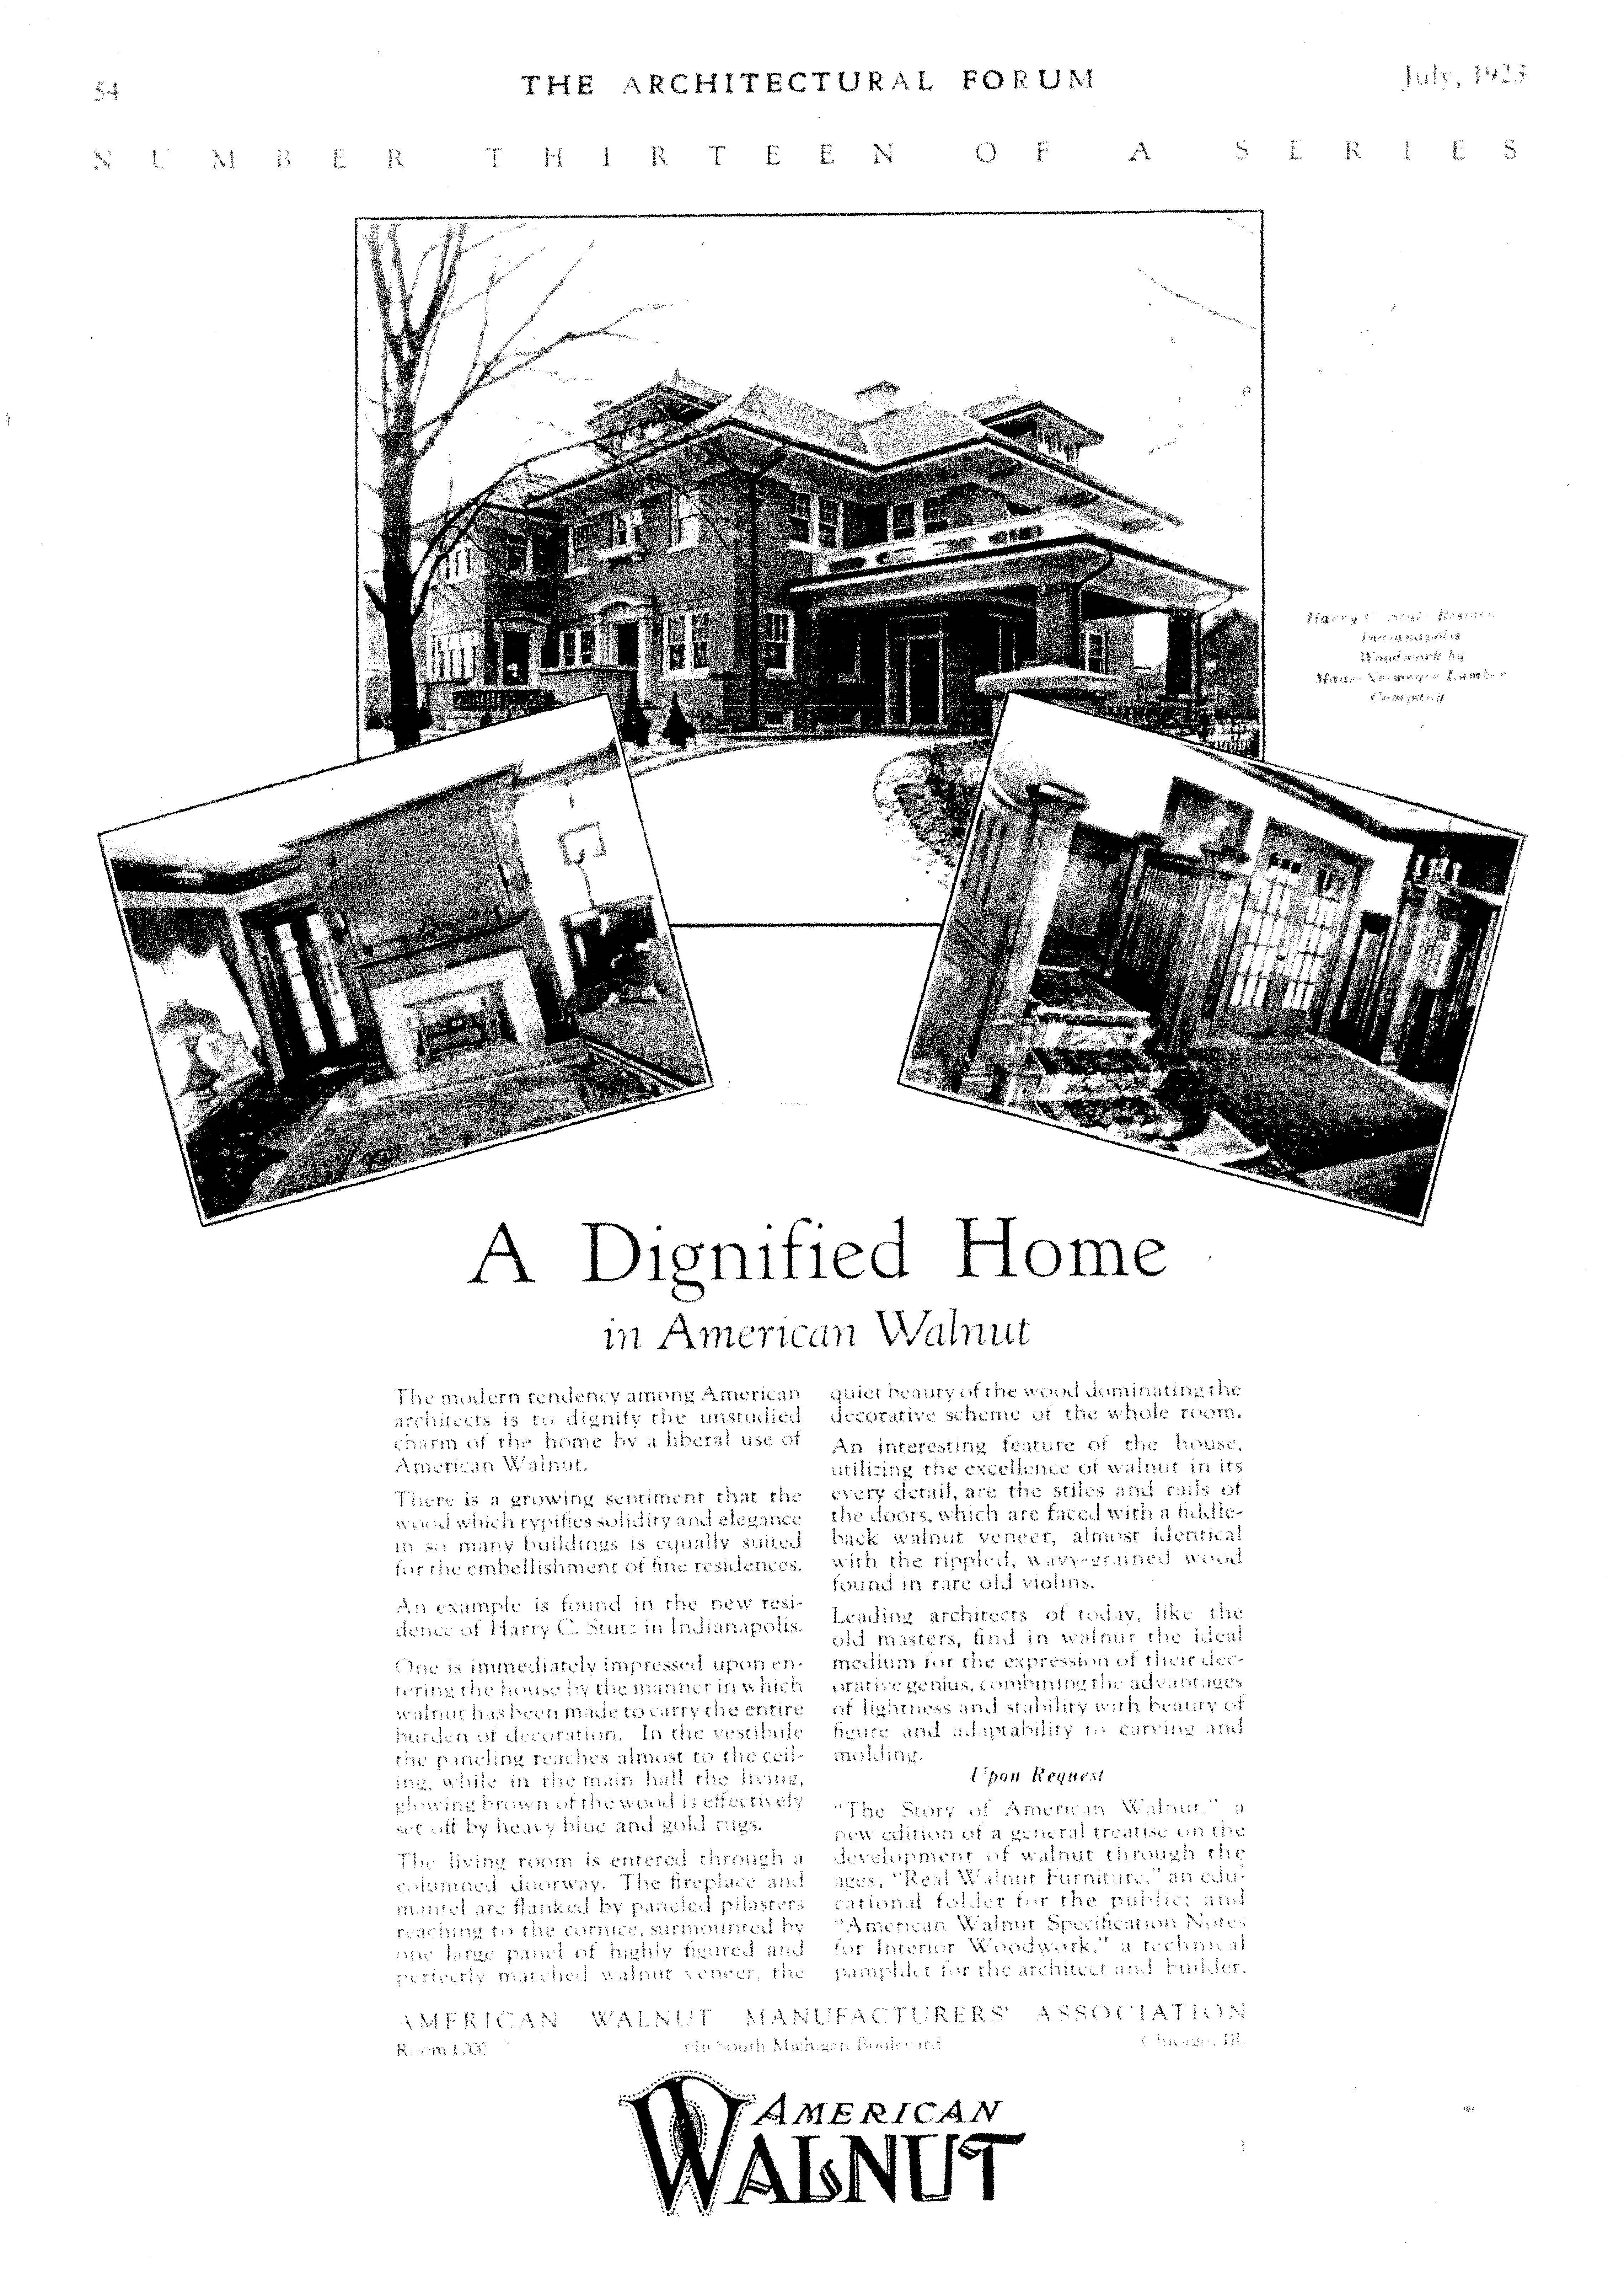 American Walnut Manufacturers' Association Ad, The Architectural Forum, July 1923